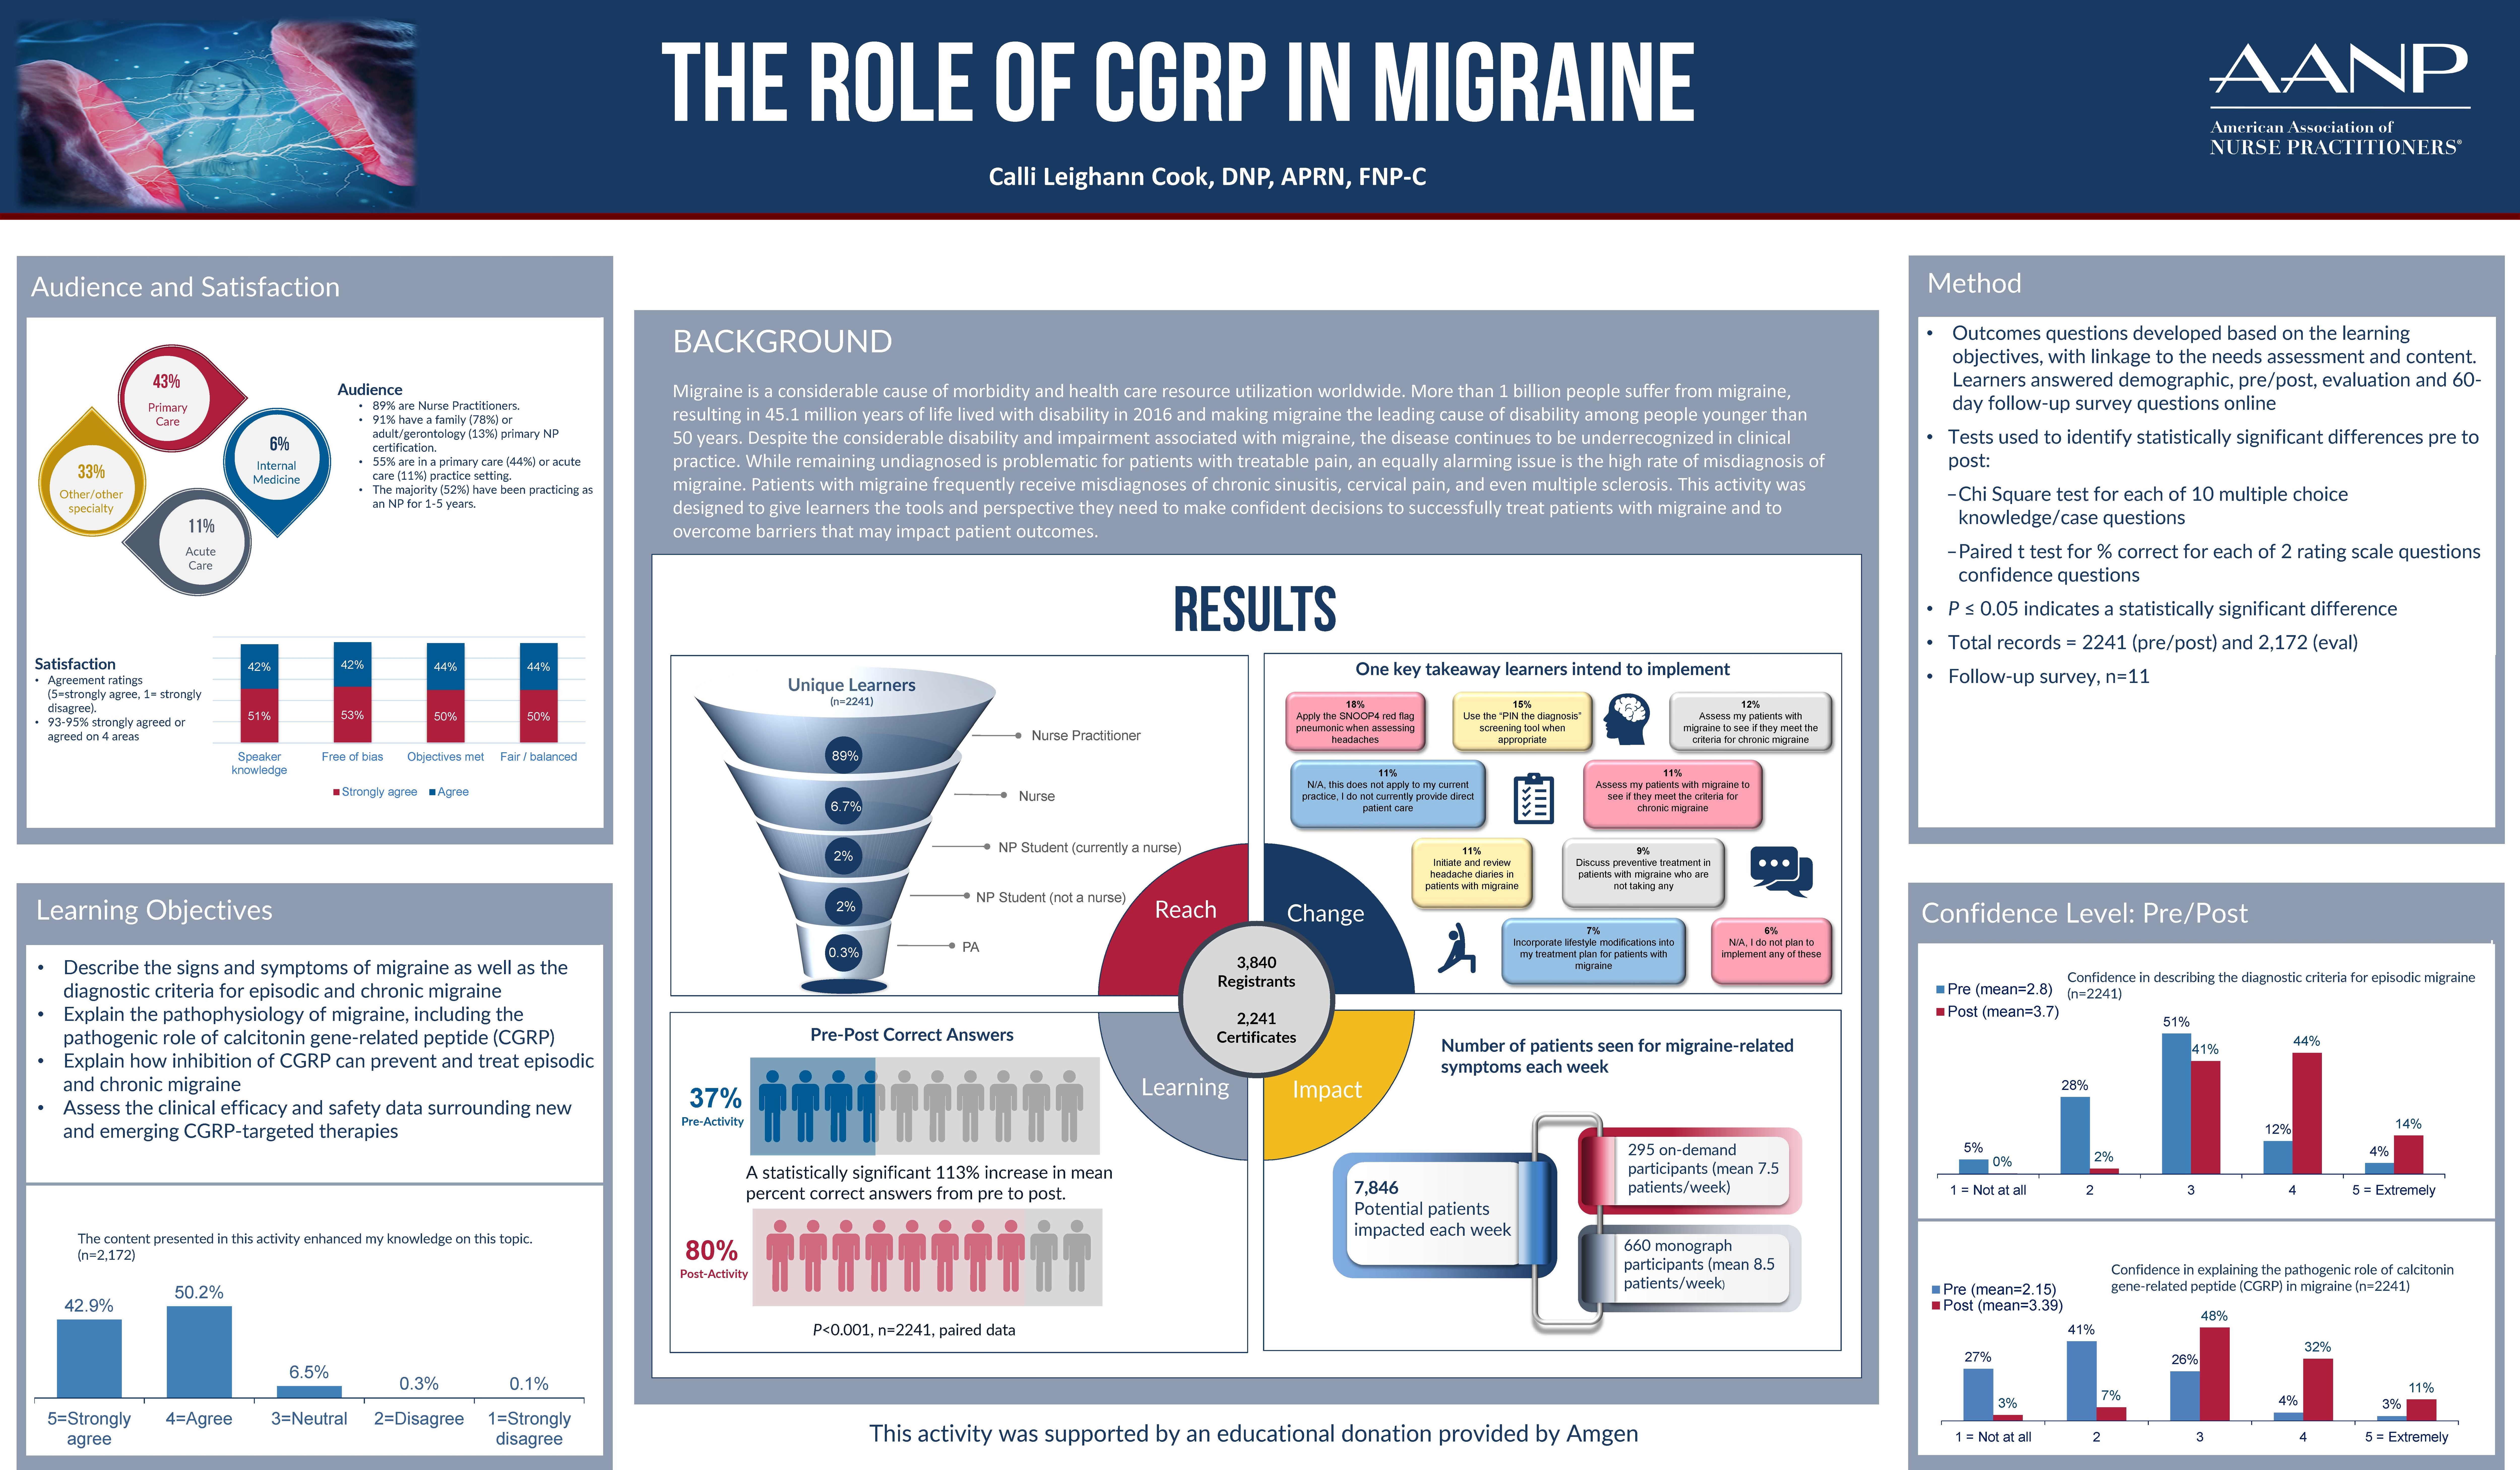 The Role of CGRP in Migraine